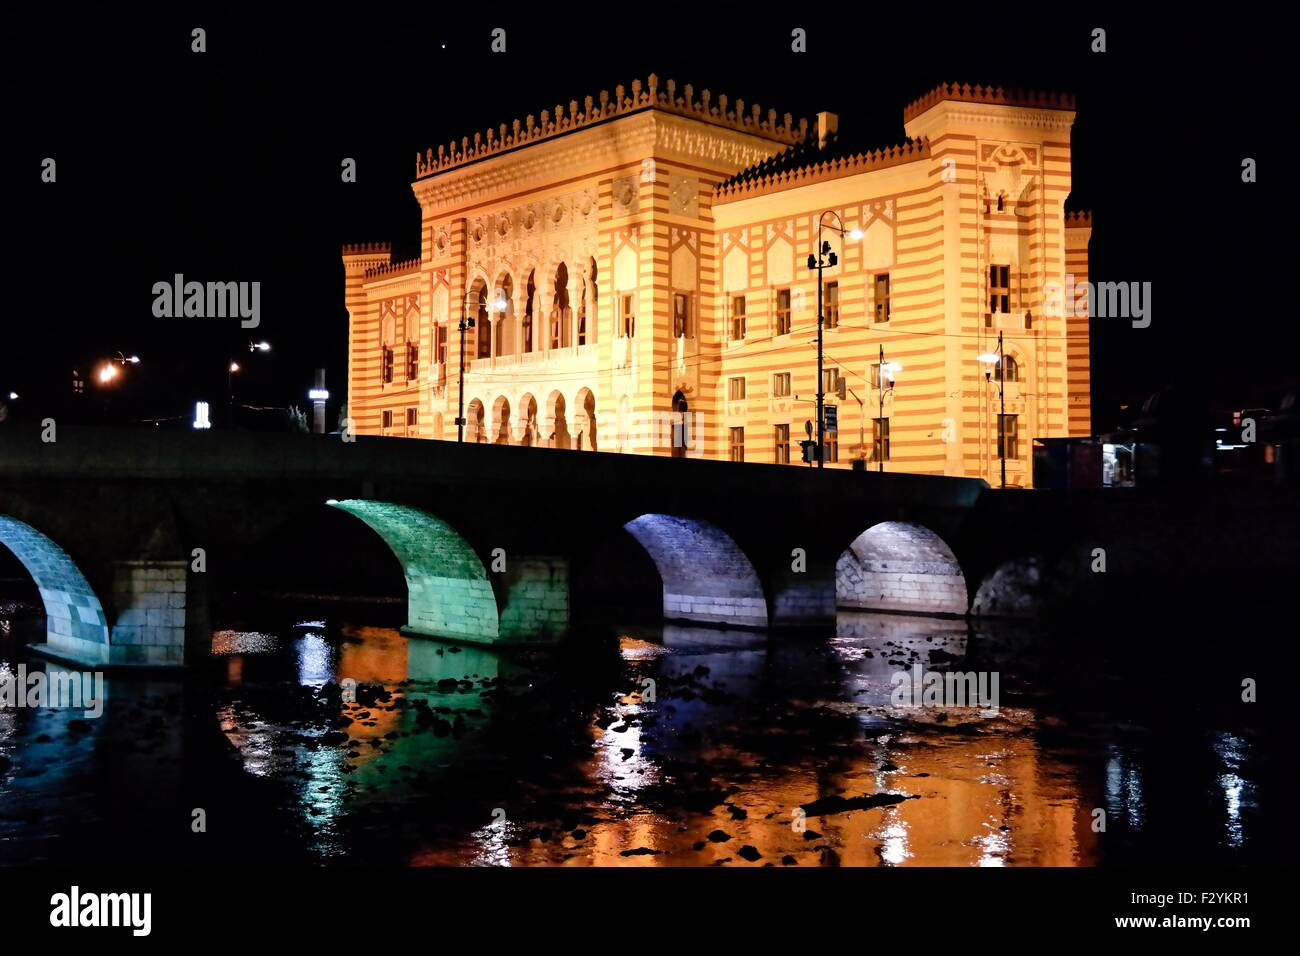 National Library of Bosnia and Herzegovina and river Miljacka in Sarajevo at night. - Stock Image